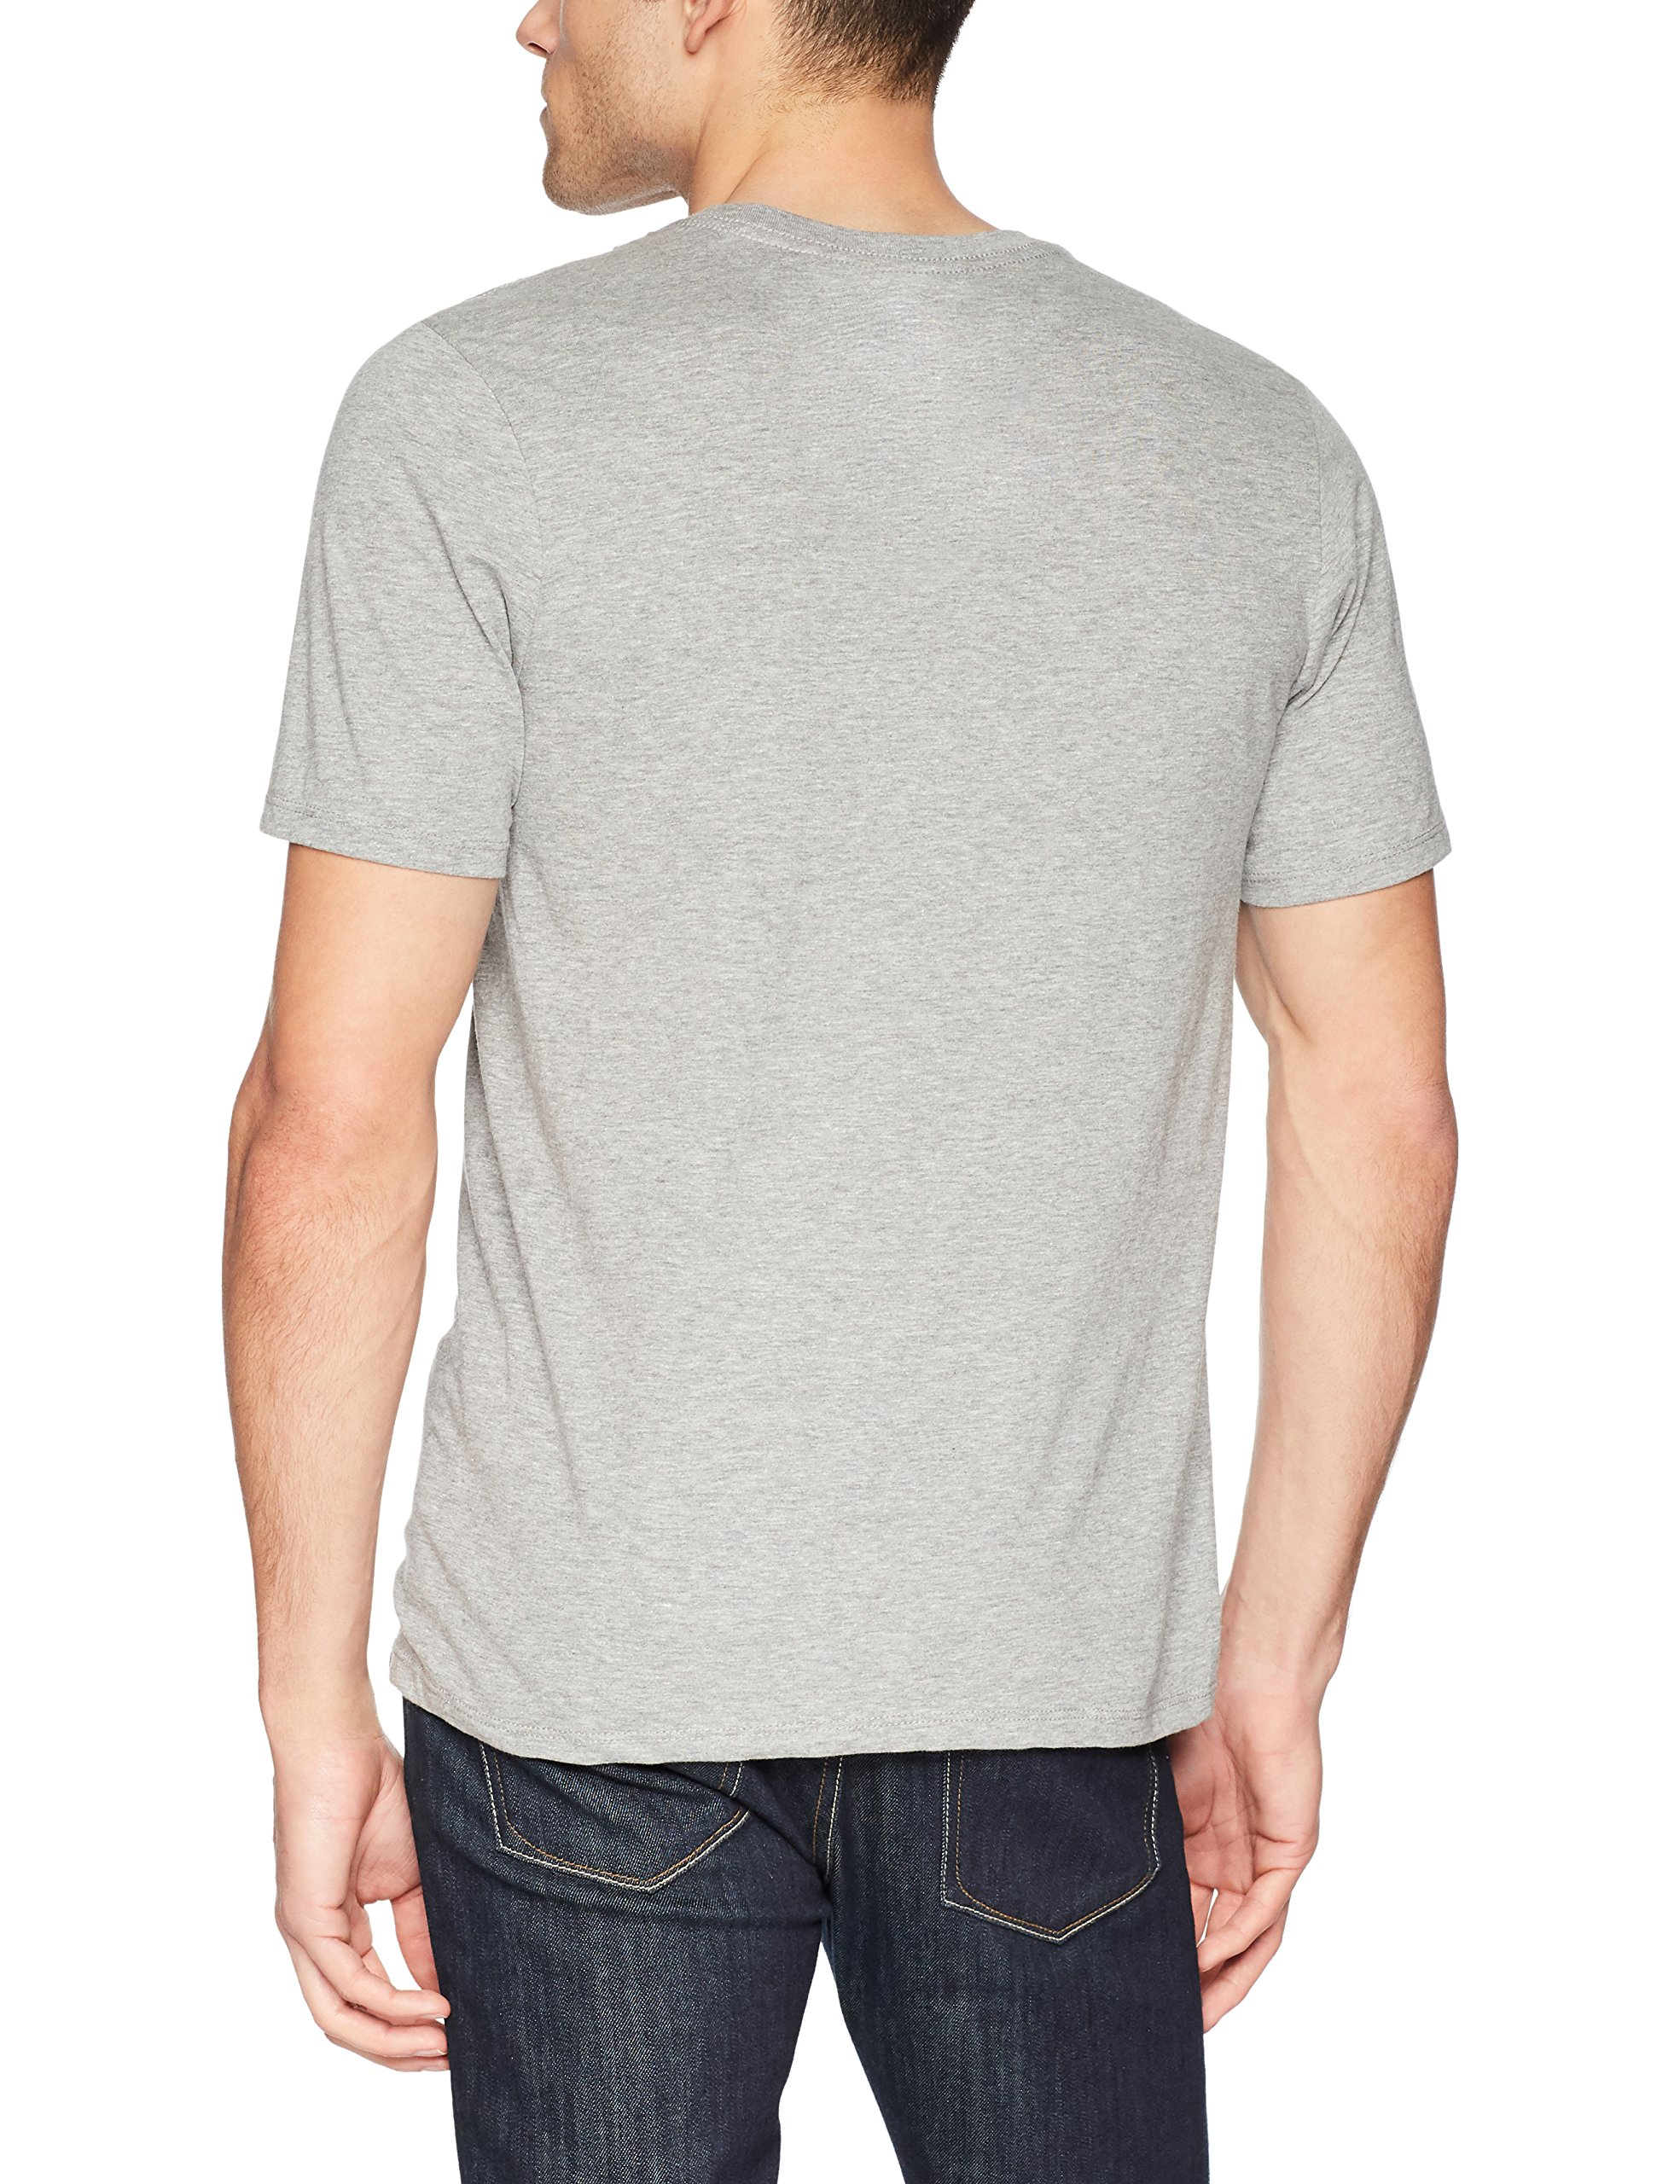 Hurley Men's One and Only Gradient Fill Premium Short Sleeve Tee Shirt, Dark Grey Heather, M by Hurley (Image #2)